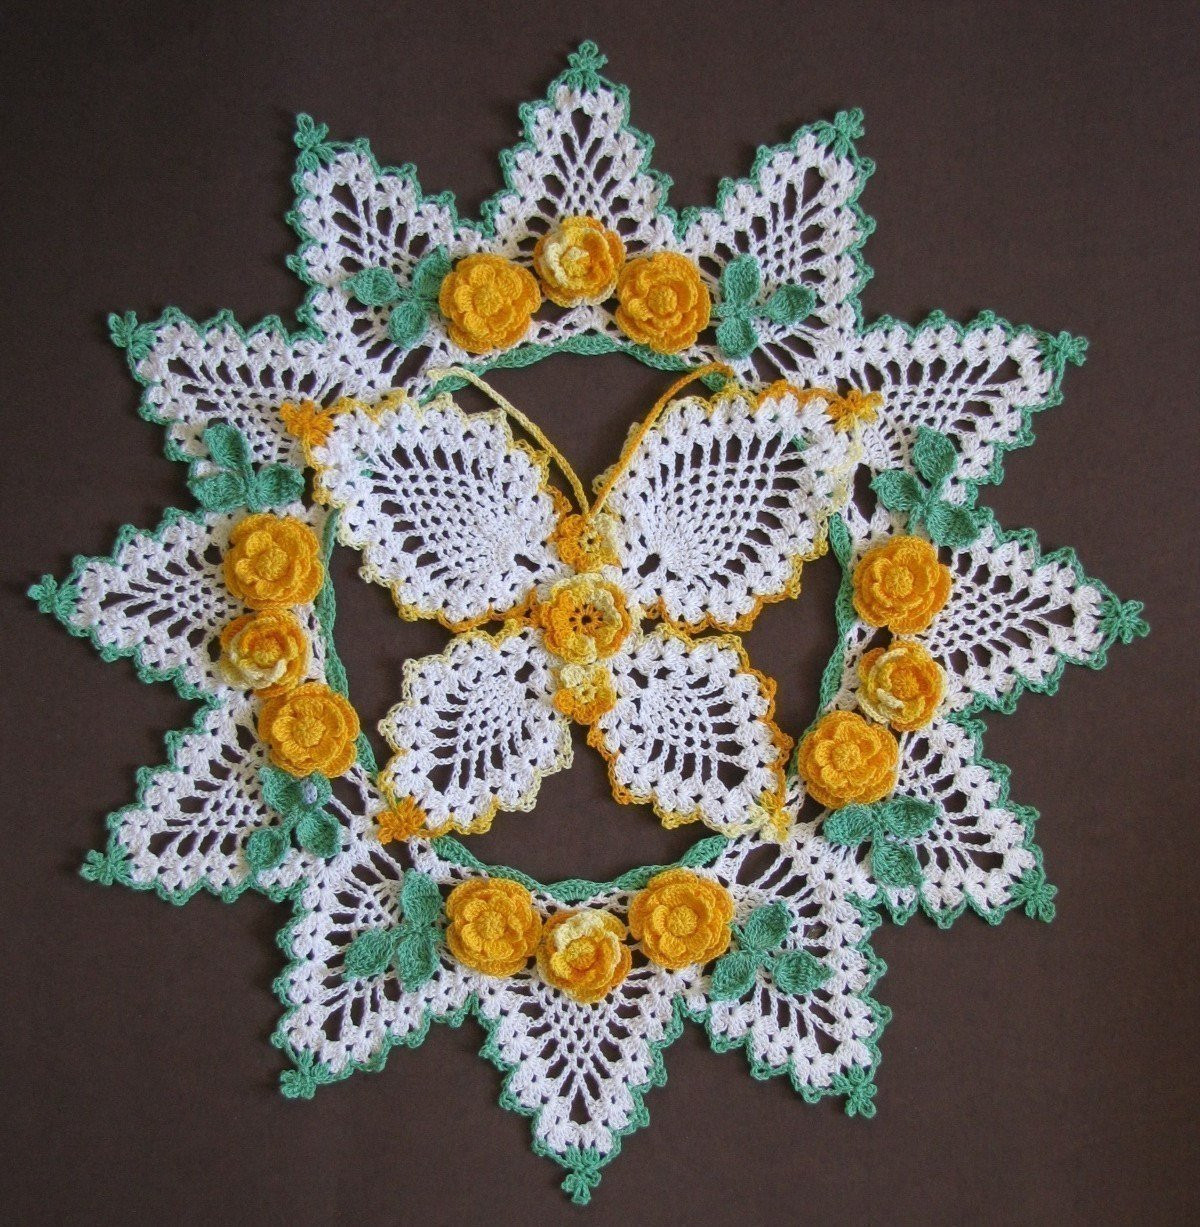 Crochet Doily Patterns Awesome Crochet Doily Pattern Pineapple Crochet — Learn How to Of Contemporary 43 Pics Crochet Doily Patterns